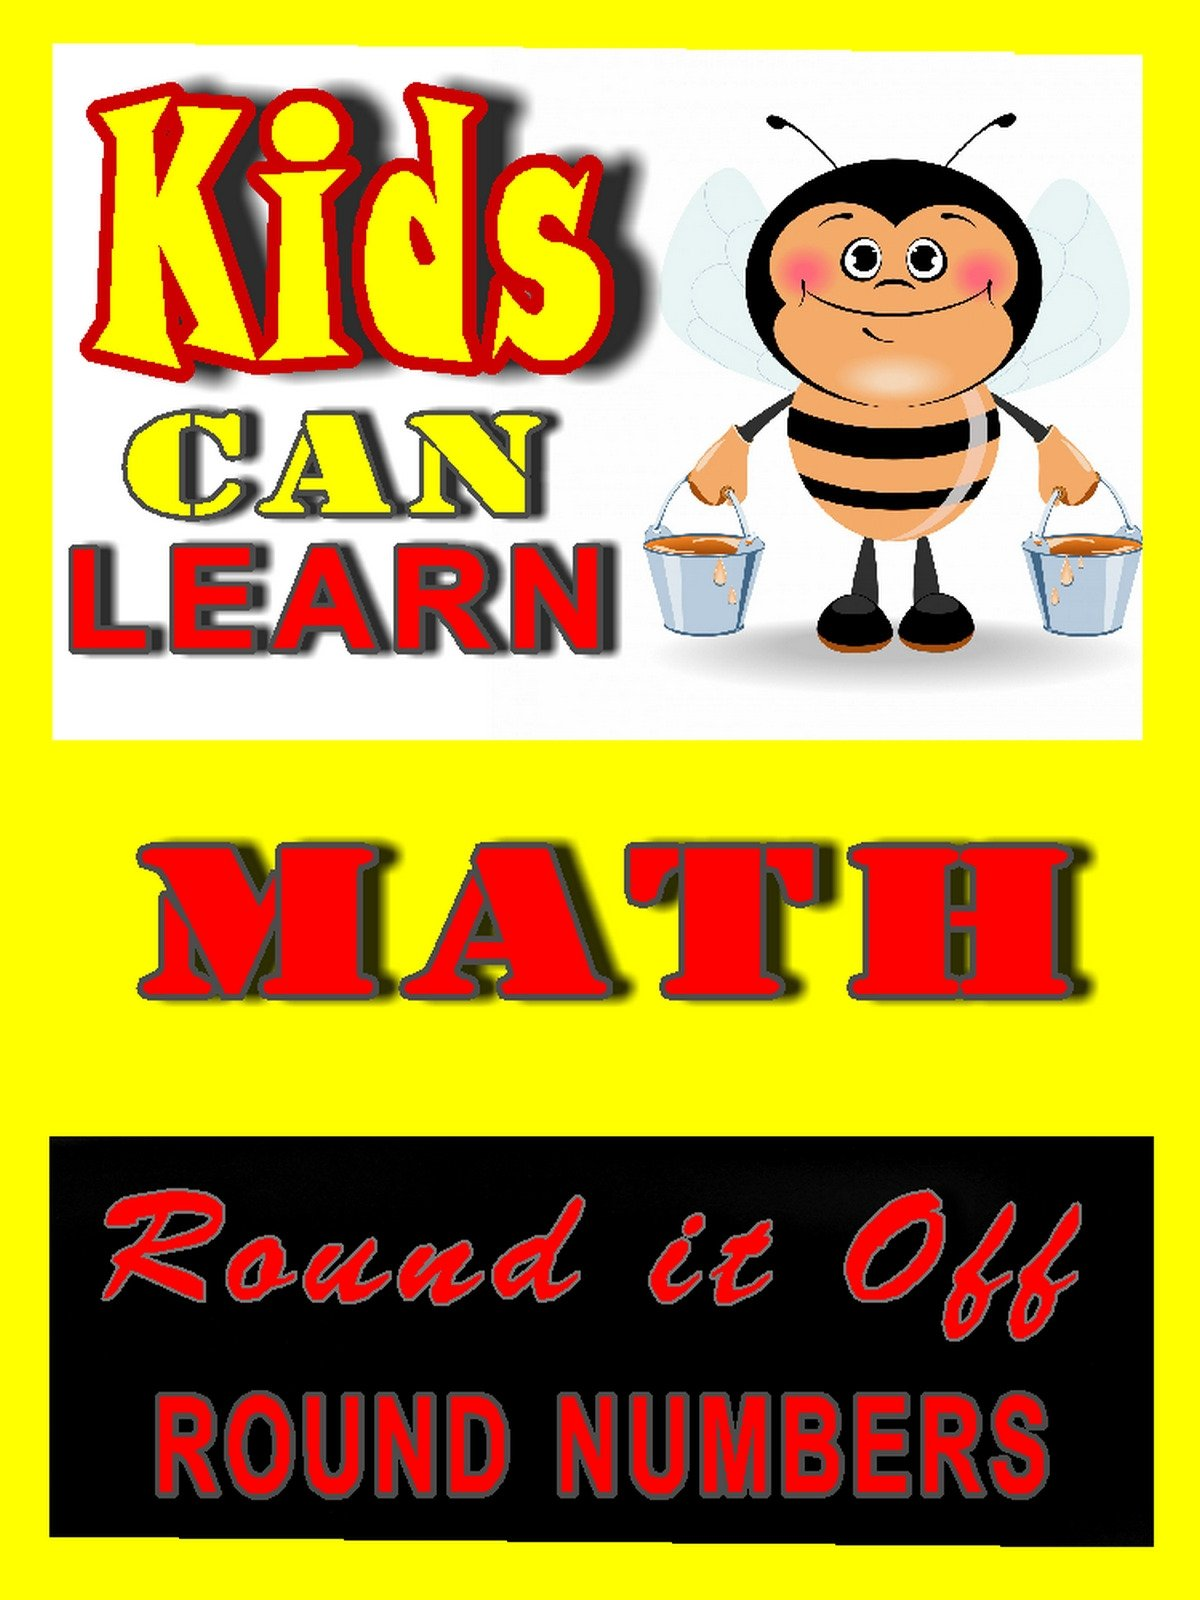 Kids can learn Math, Round it Off (Round Numbers)